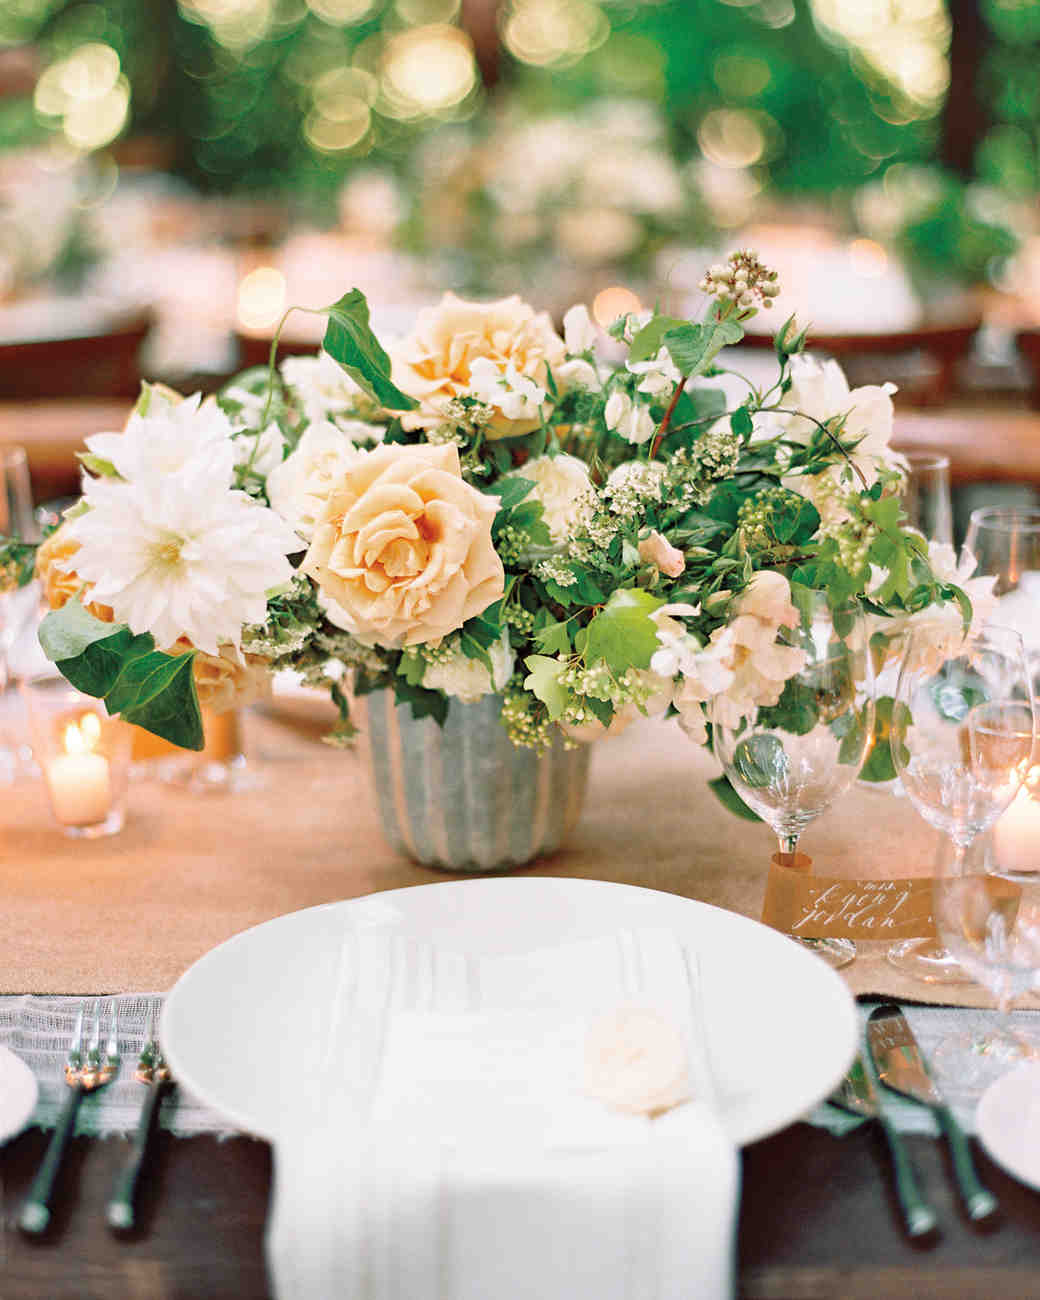 Flowers For Wedding Table Centerpieces: 22 Totally Chic Vintage Centerpieces